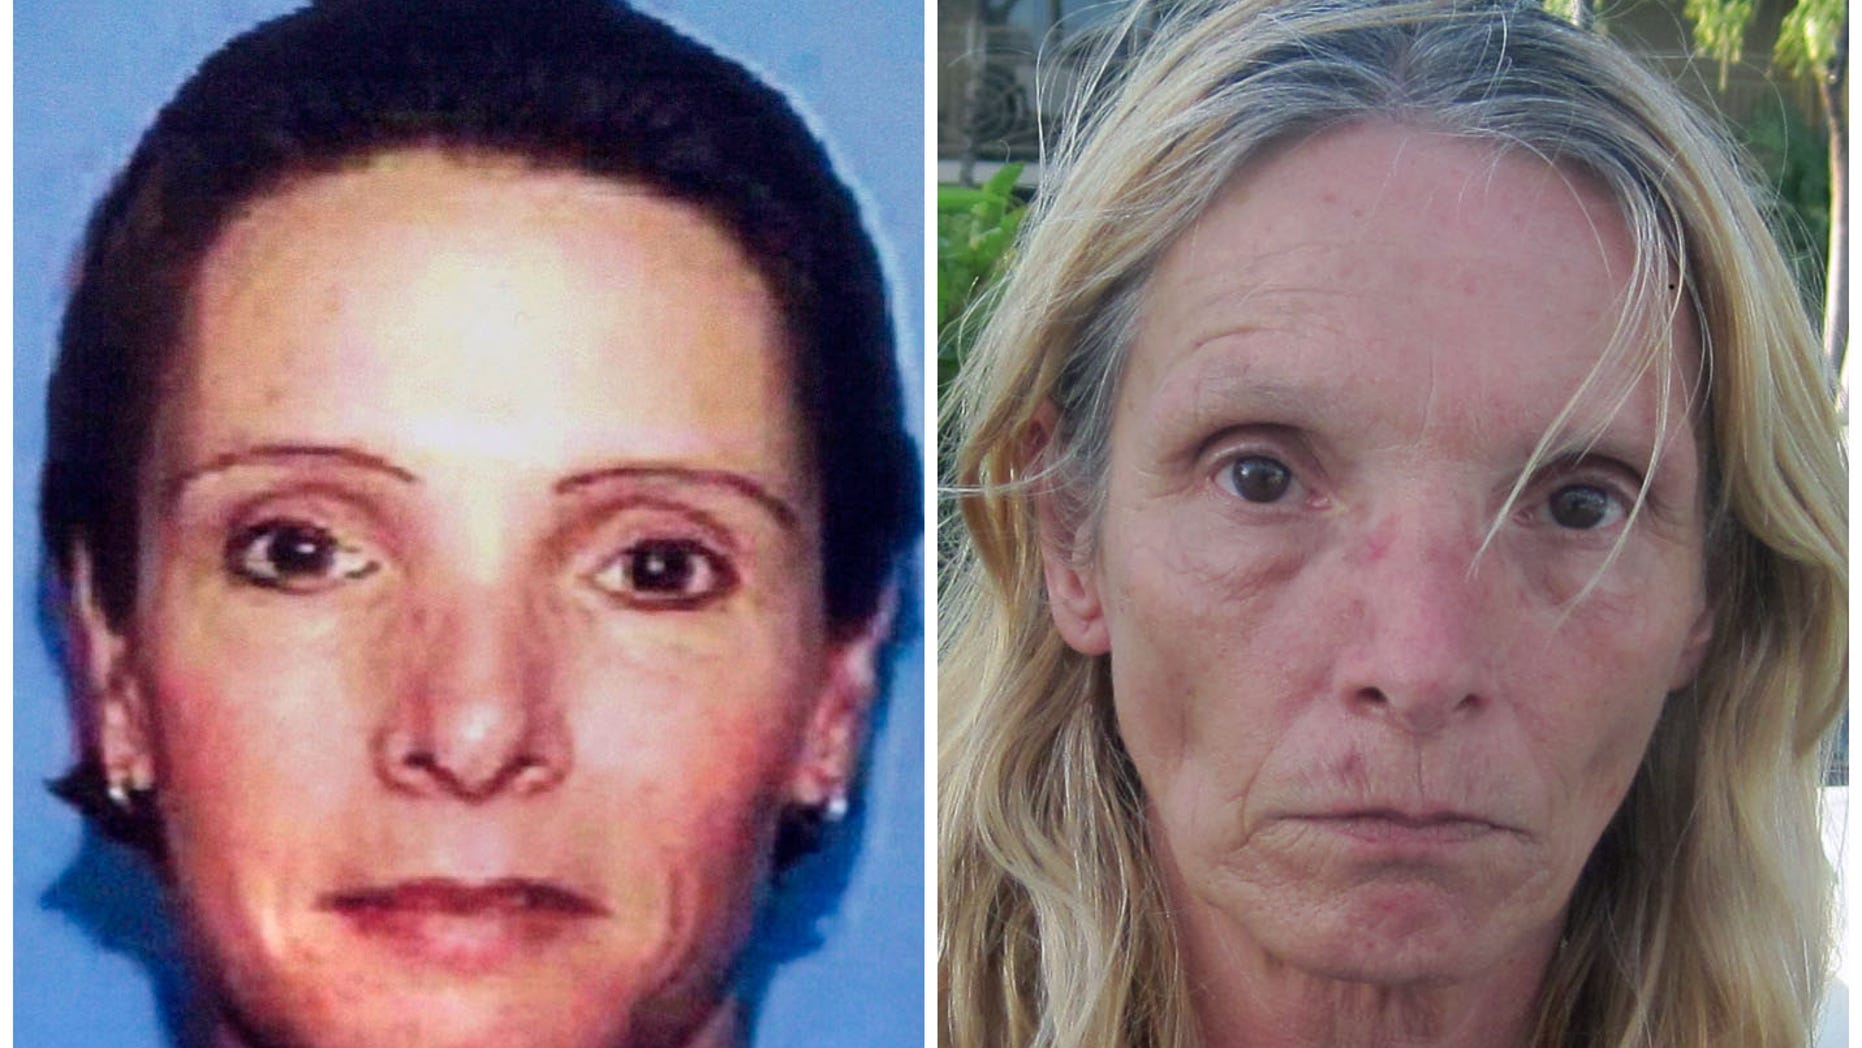 April 26, 2013: This combination of Associated Press file photos shows, left, an undated driver's license photo distributed by police in 2002 of Brenda Heist, and right, an April 26, 2013 photo of Heist taken by the Monroe County, Fla. Sheriff's Office and released by the Lititz Borough, Pa. Police.